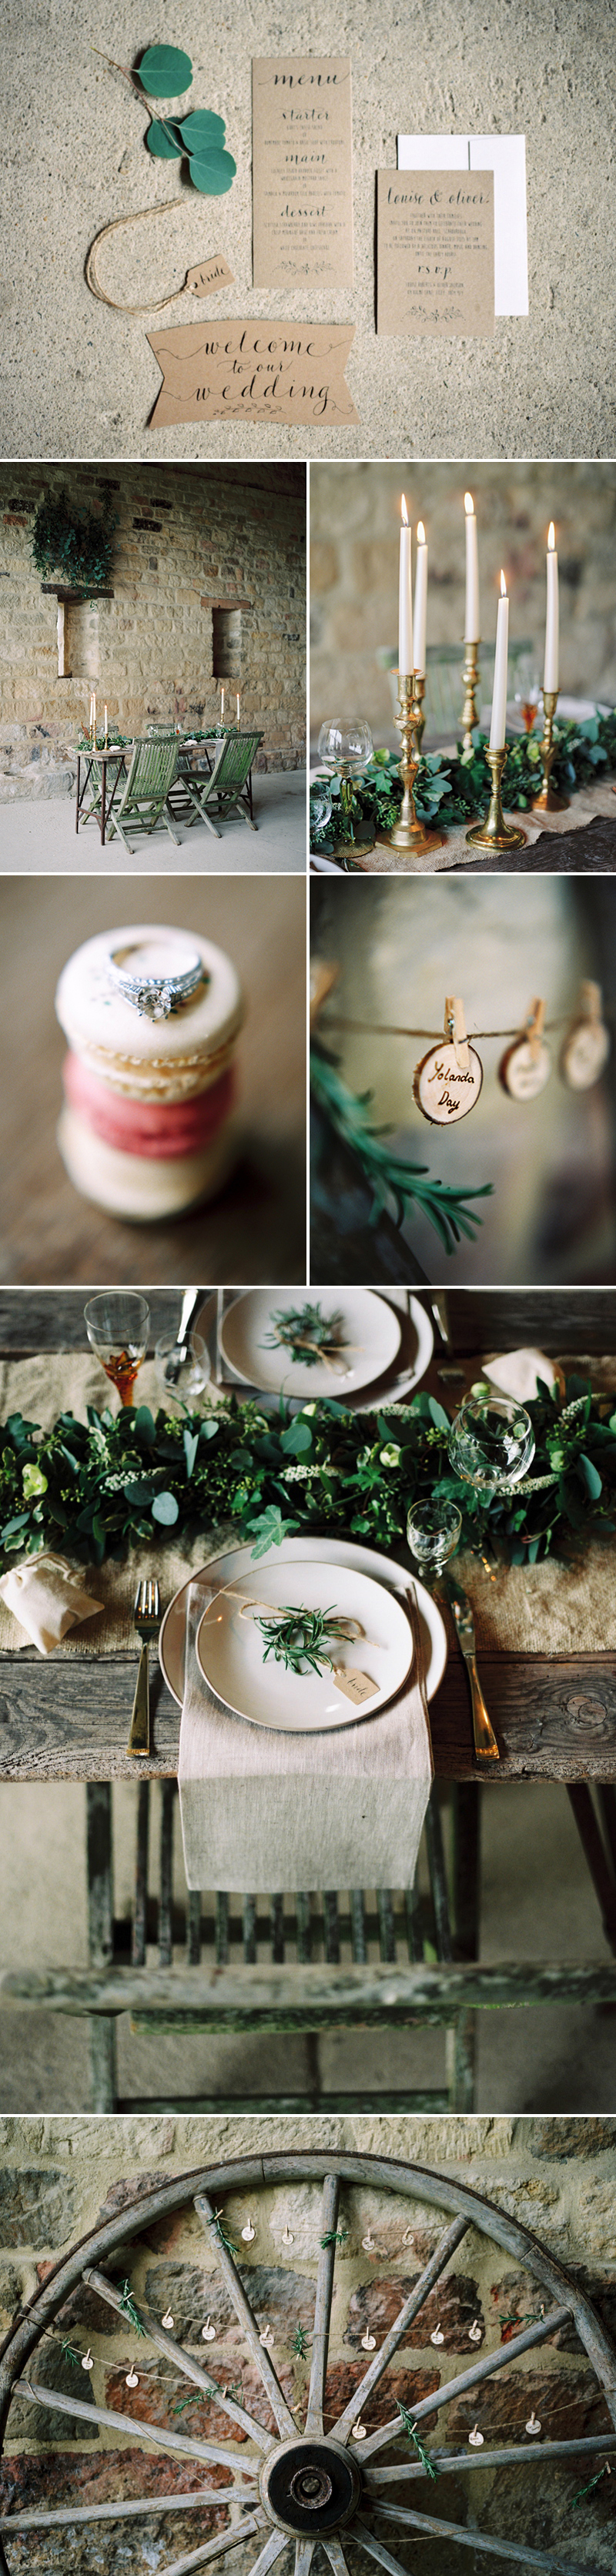 rustic-elegance-wedding-inspiration-coco-wedding-venues-theresa-furey-photography-002